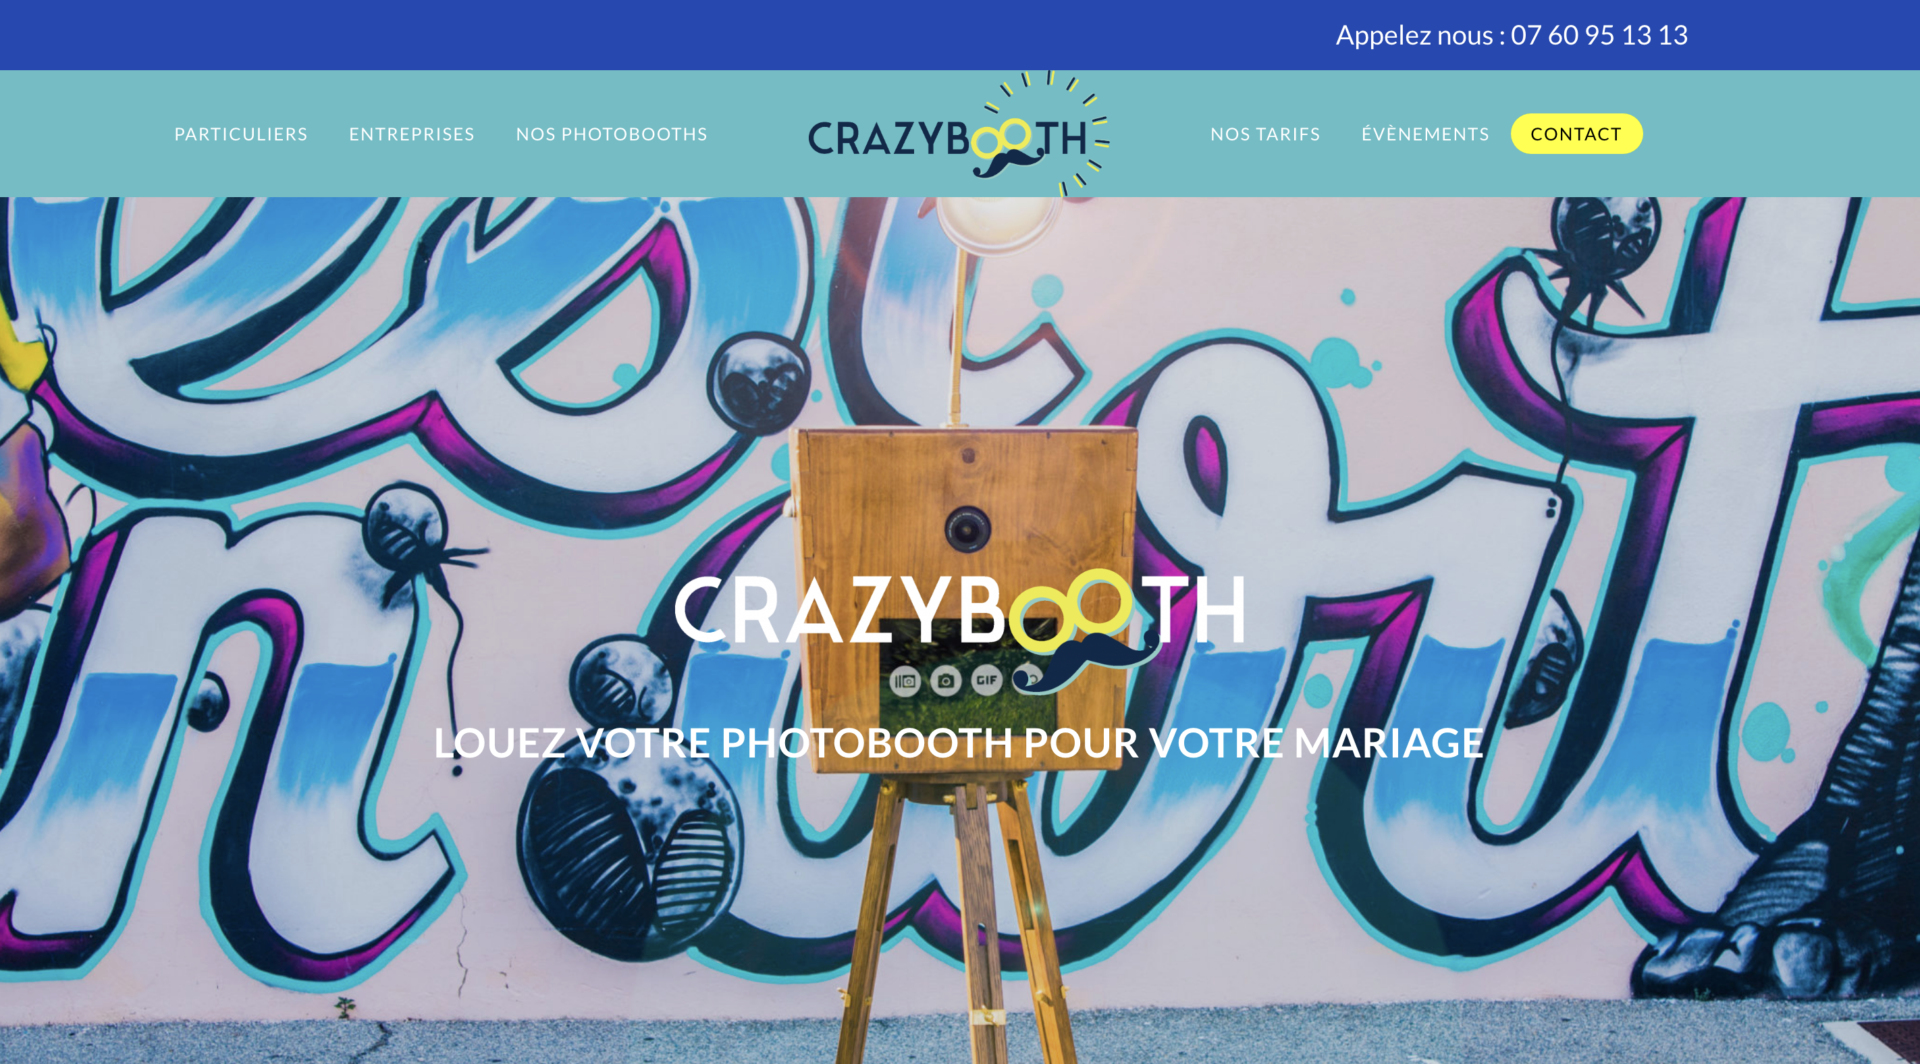 Crazybooth - Création site internet